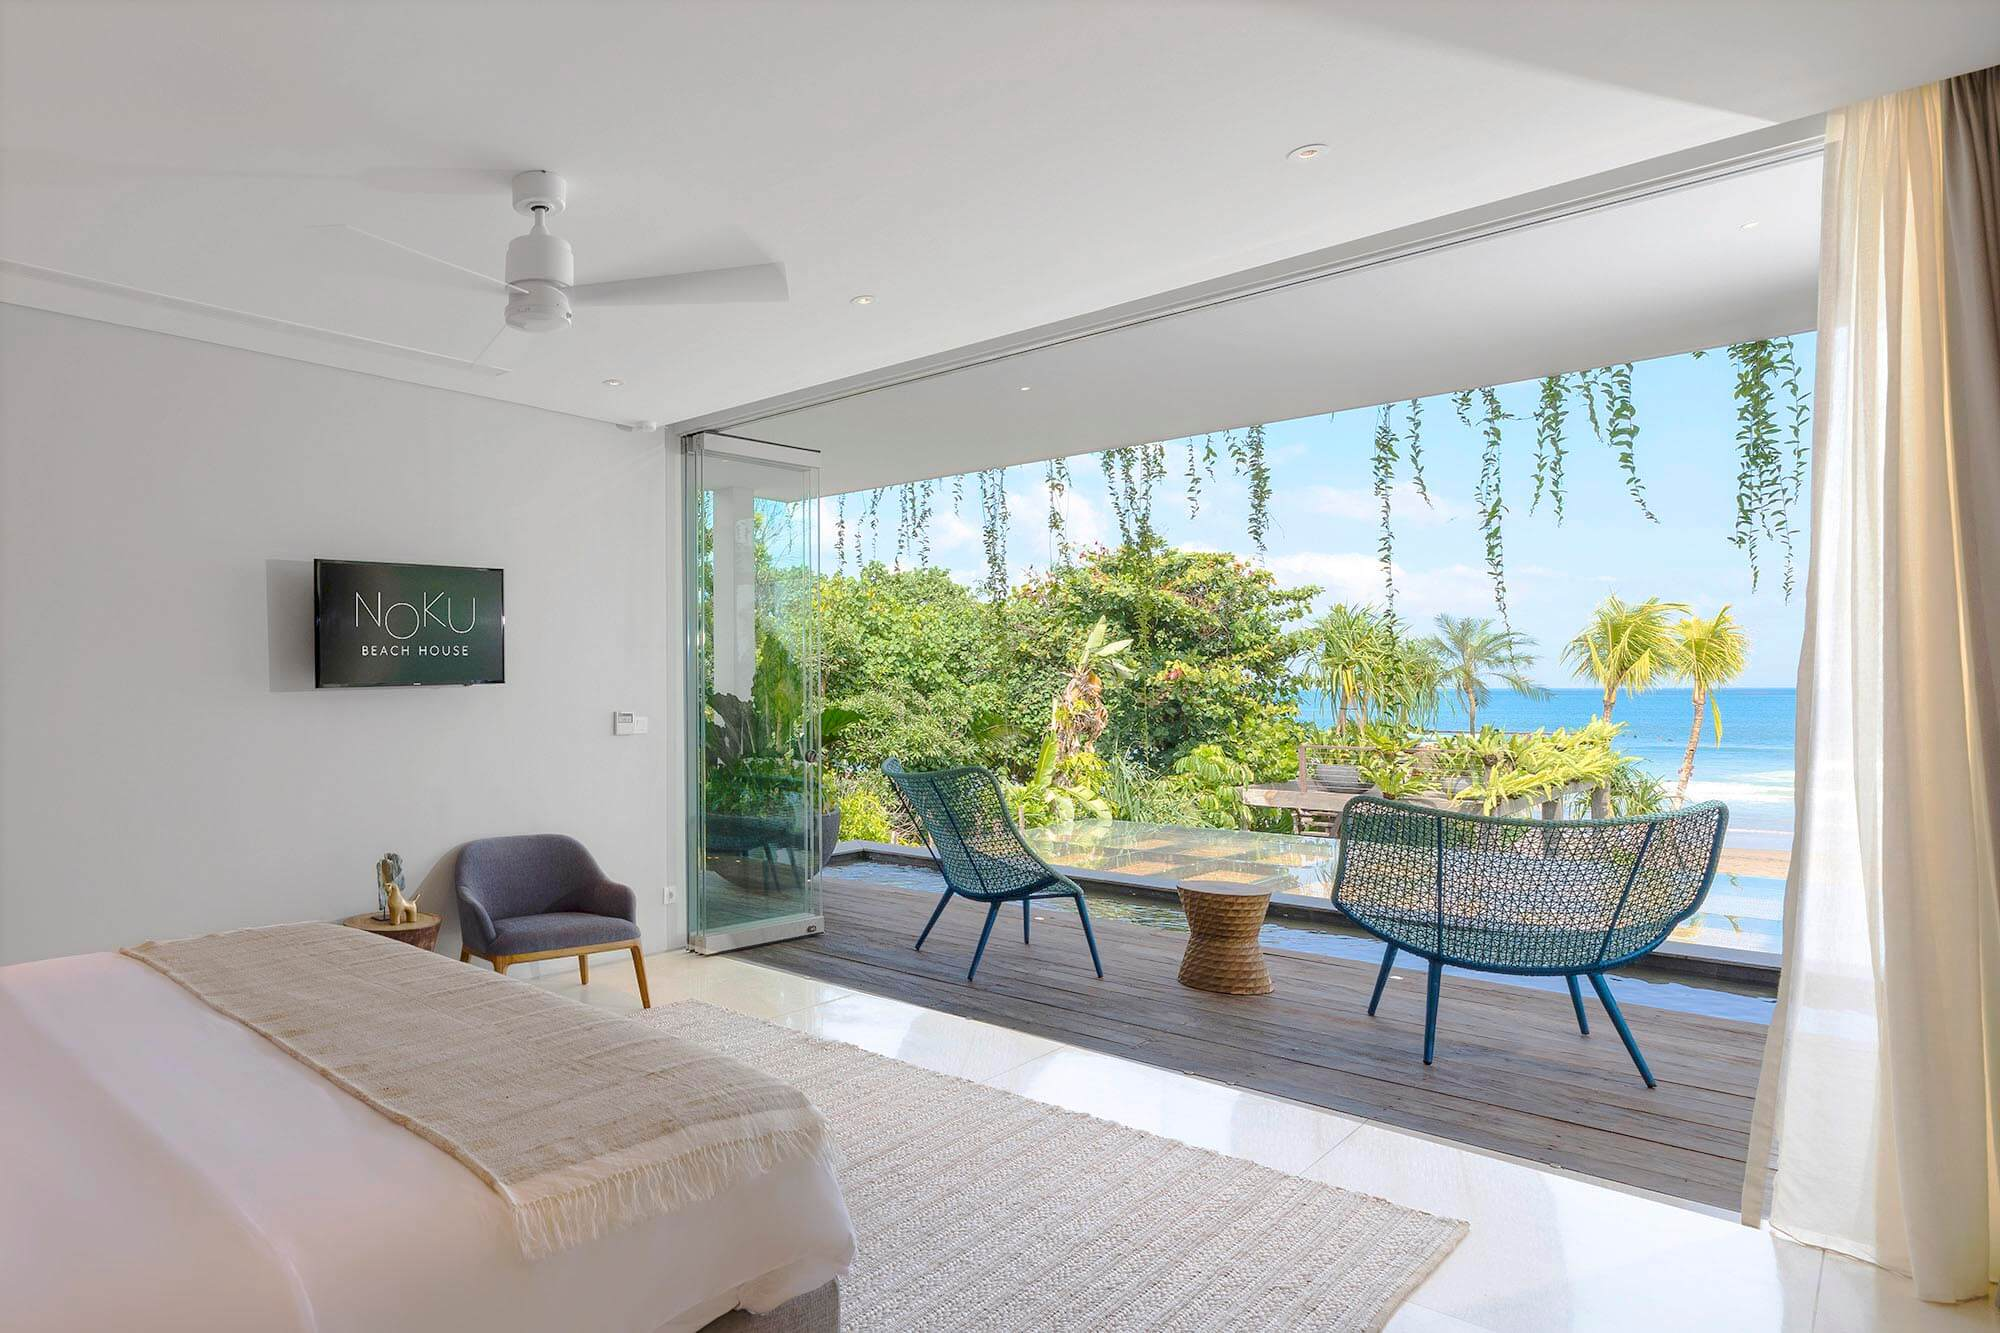 Noku Beach House   Marvelous View From Bedroom